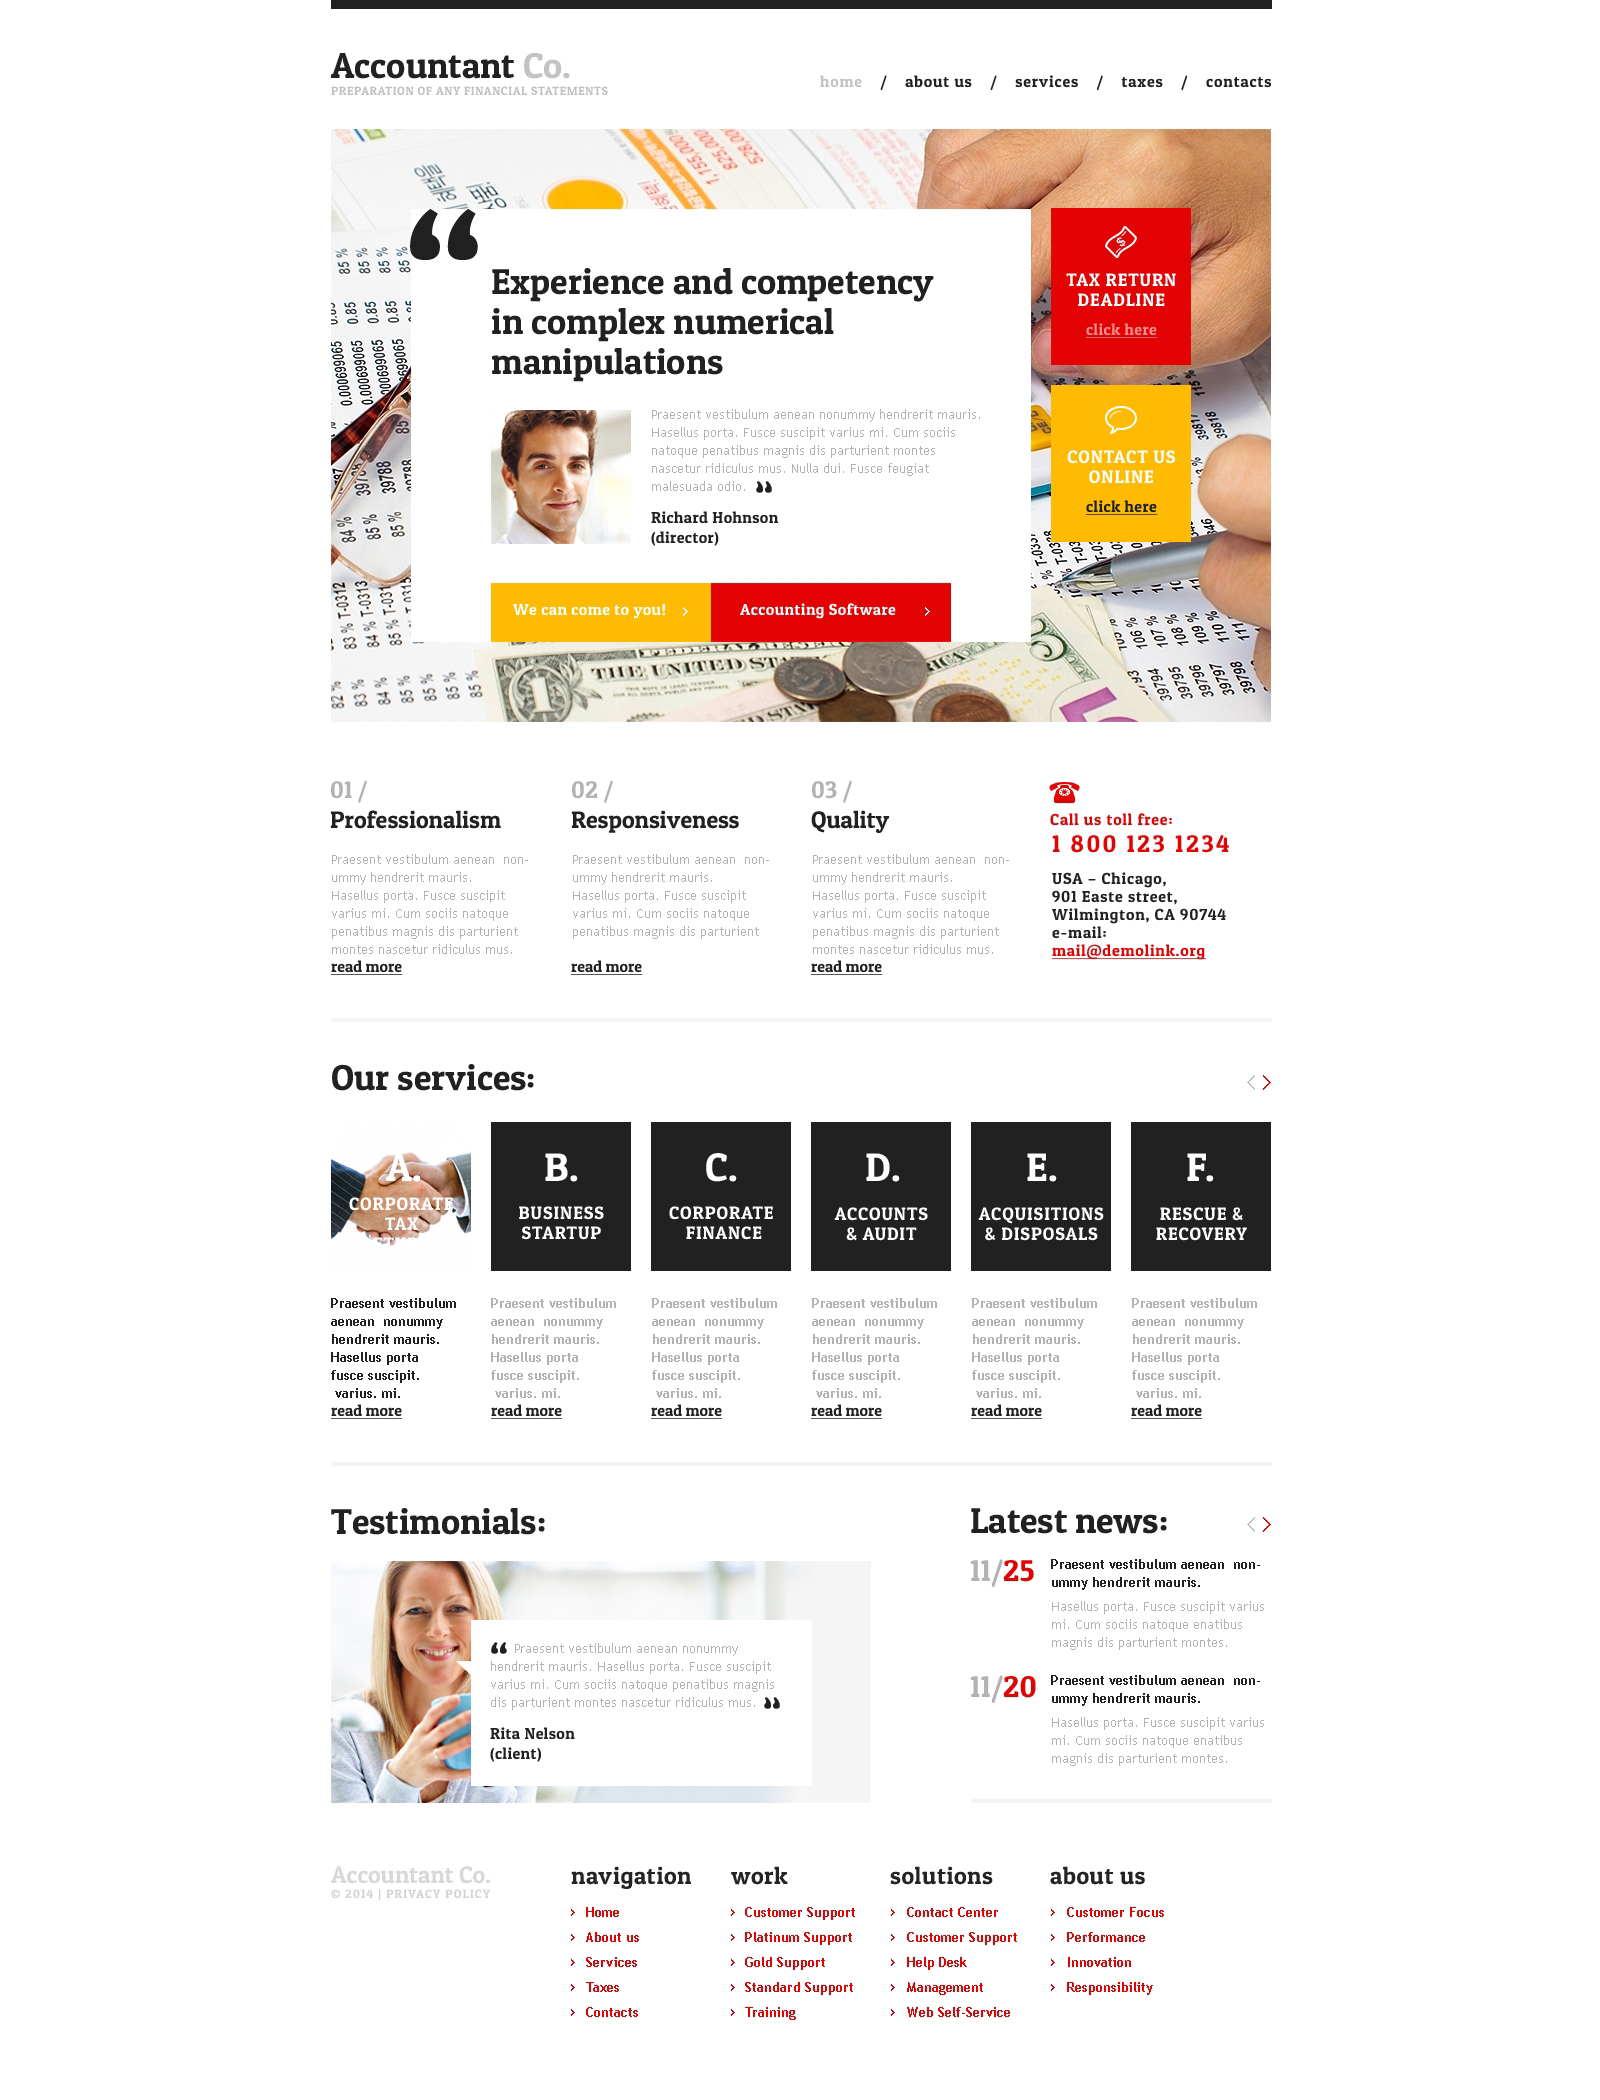 Accounting Templates, Accounting Website Templates